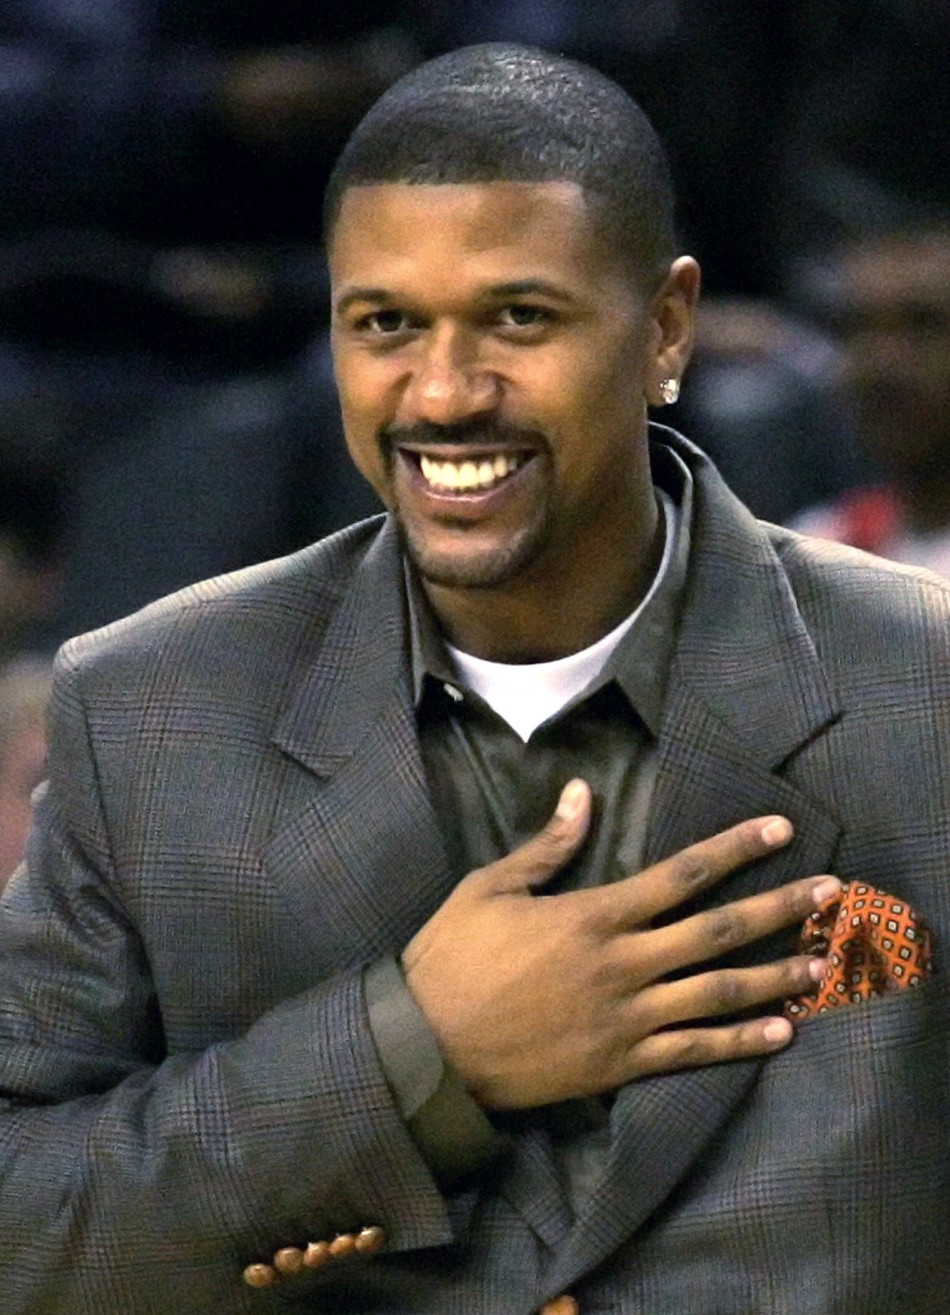 NBA Star Jalen Rose to Serve 20 Days in Jail for Drunk Driving